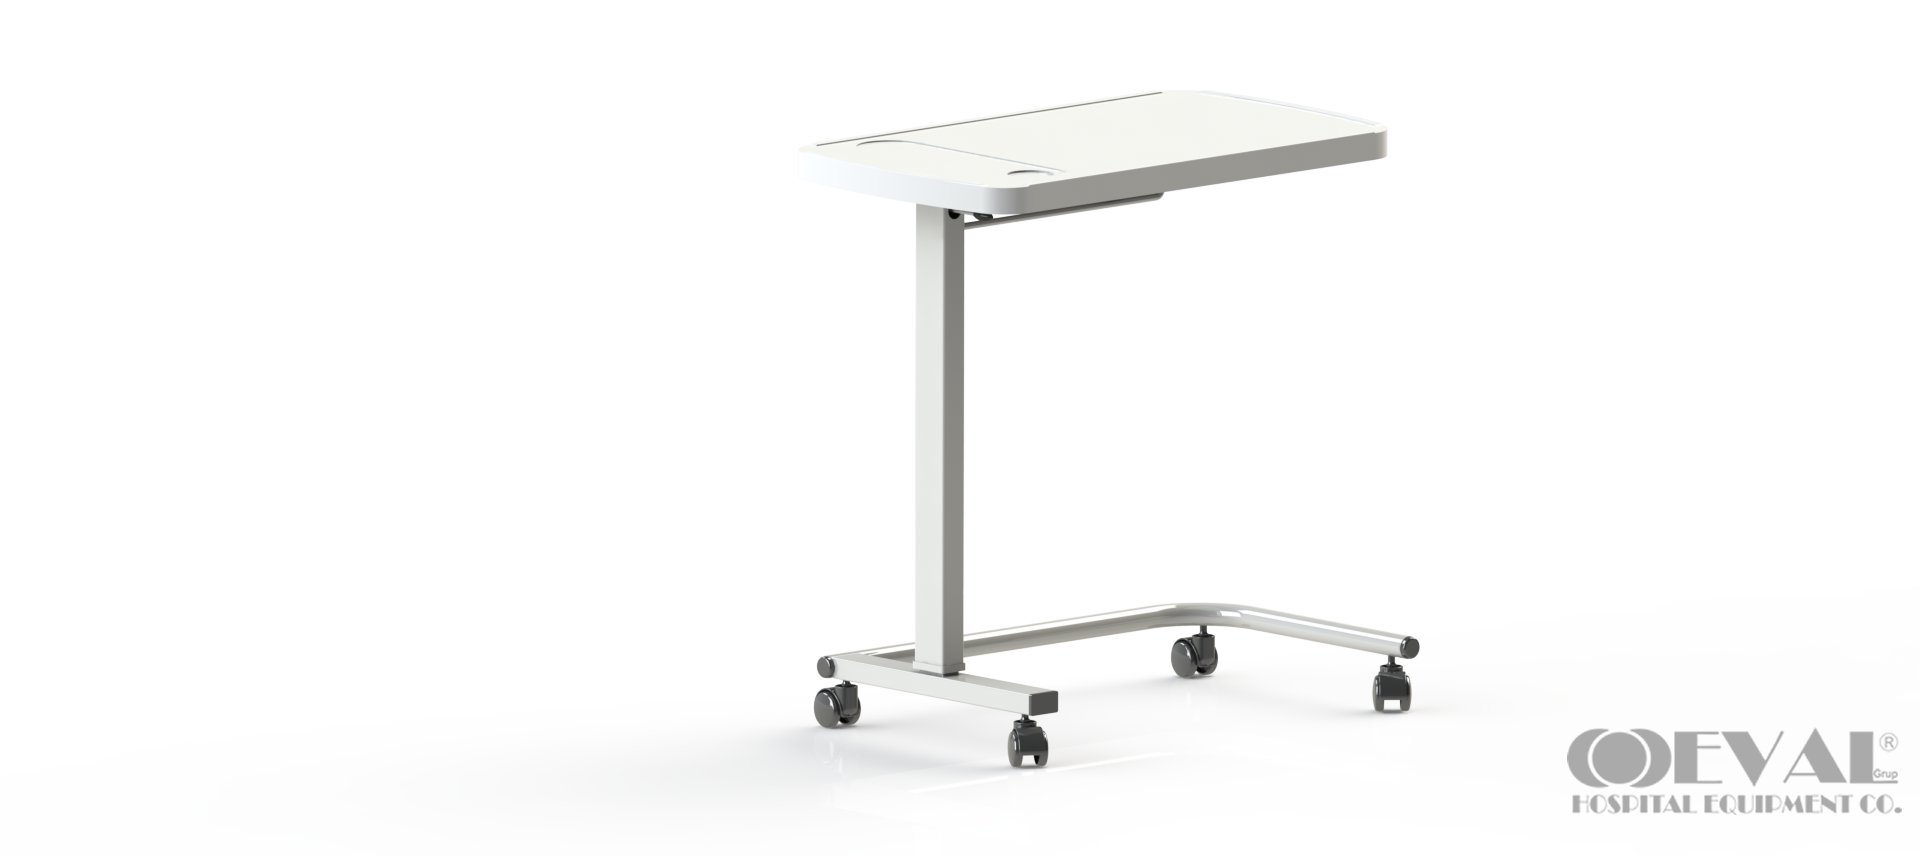 ABS 01 OVERBED TABLE